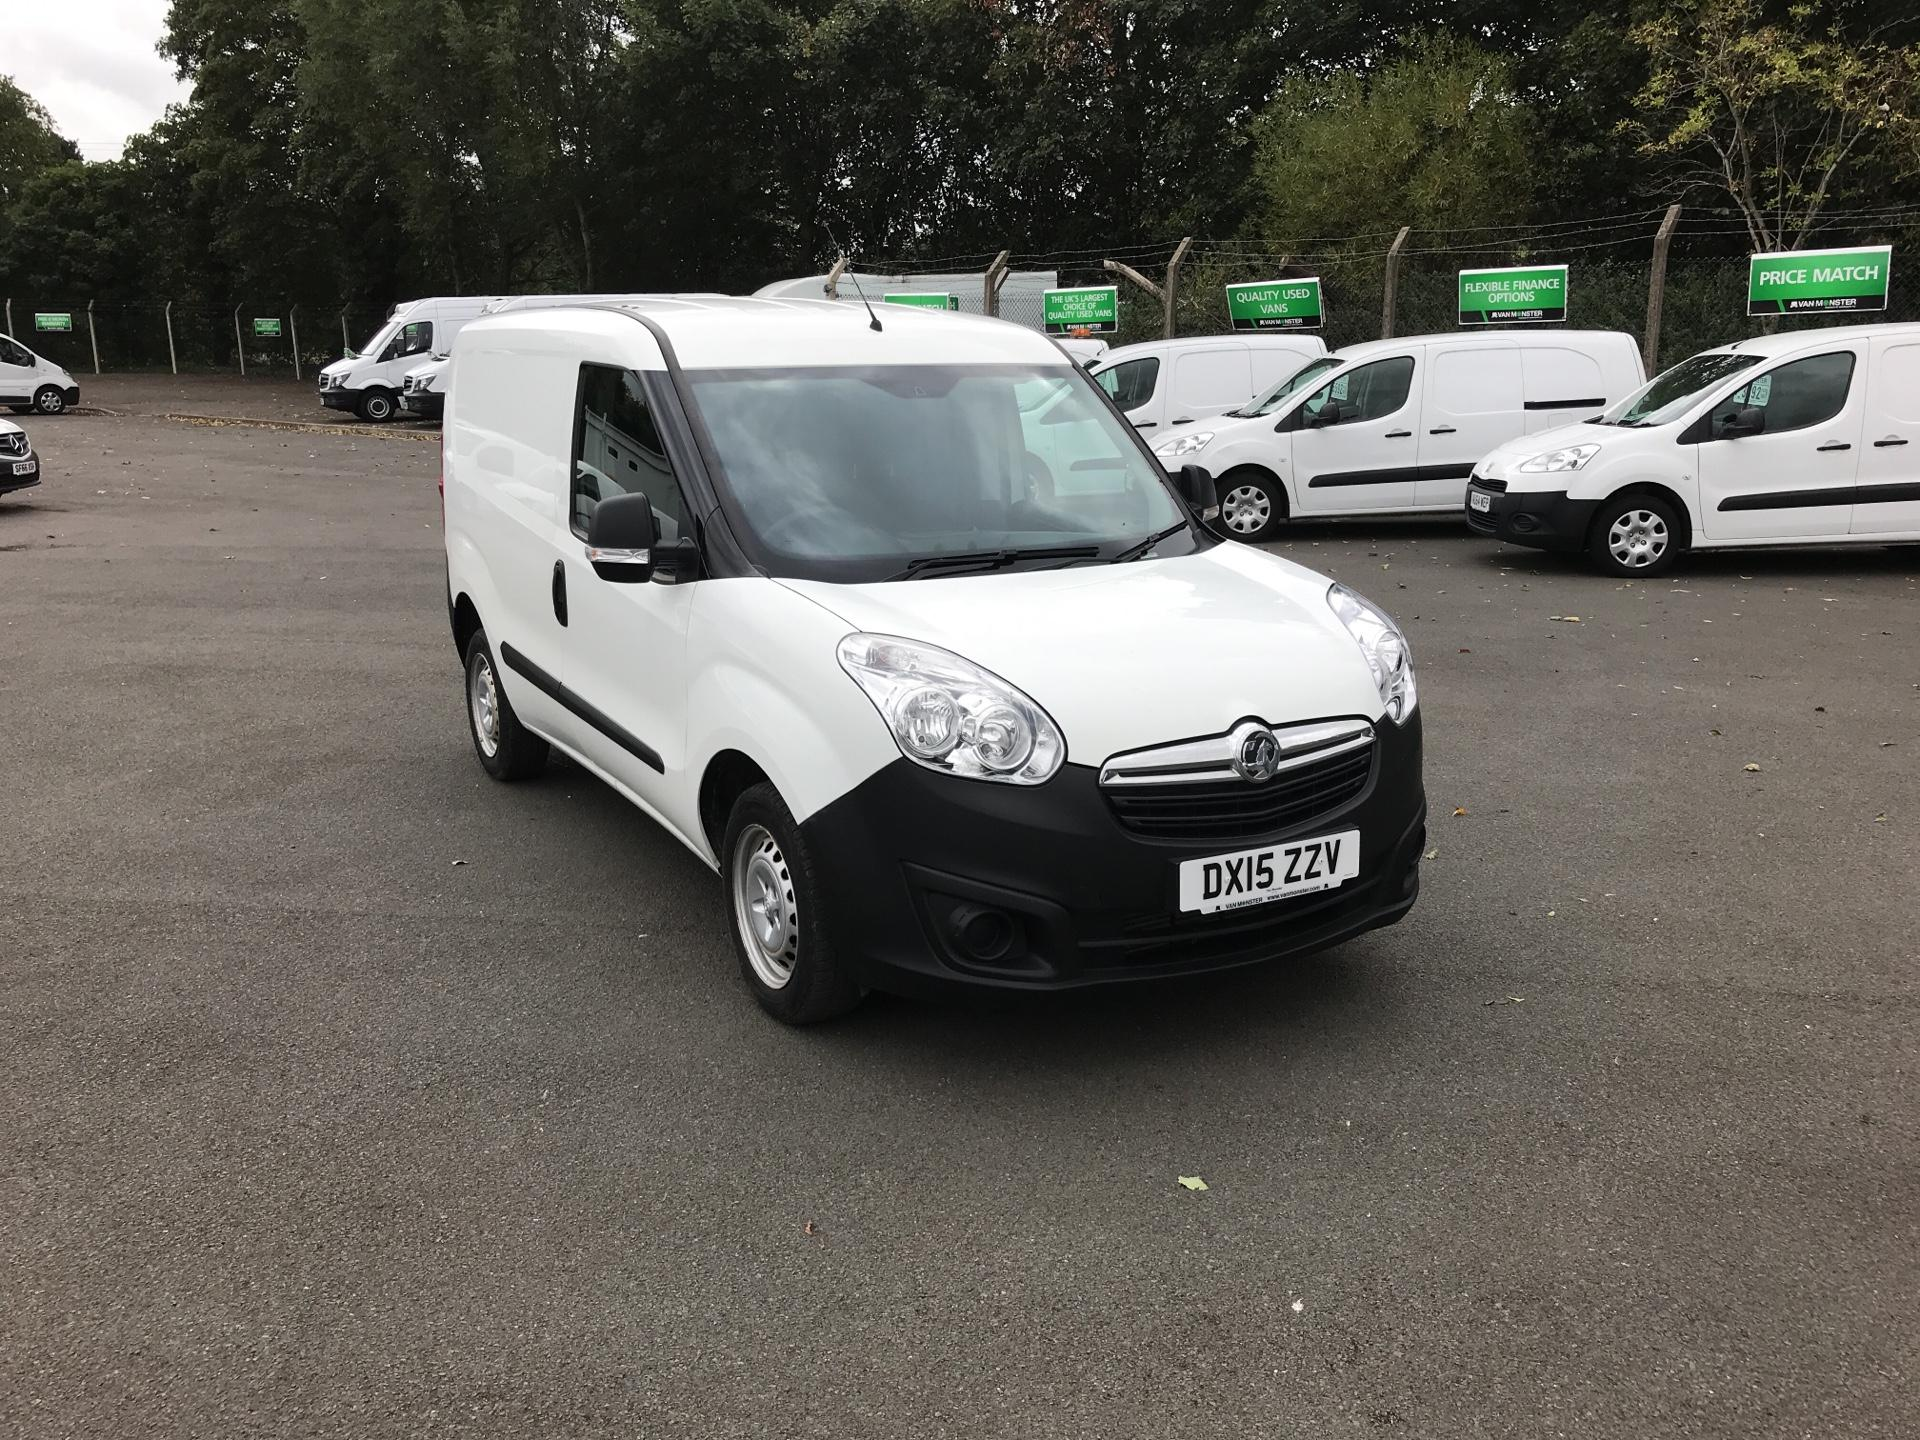 2015 Vauxhall Combo  L1 H1 200 1.3 16V EURO 5 *VALUE RANGE VEHICLE - CONDITION REFLECTED IN PRICE* (DX15ZZV)